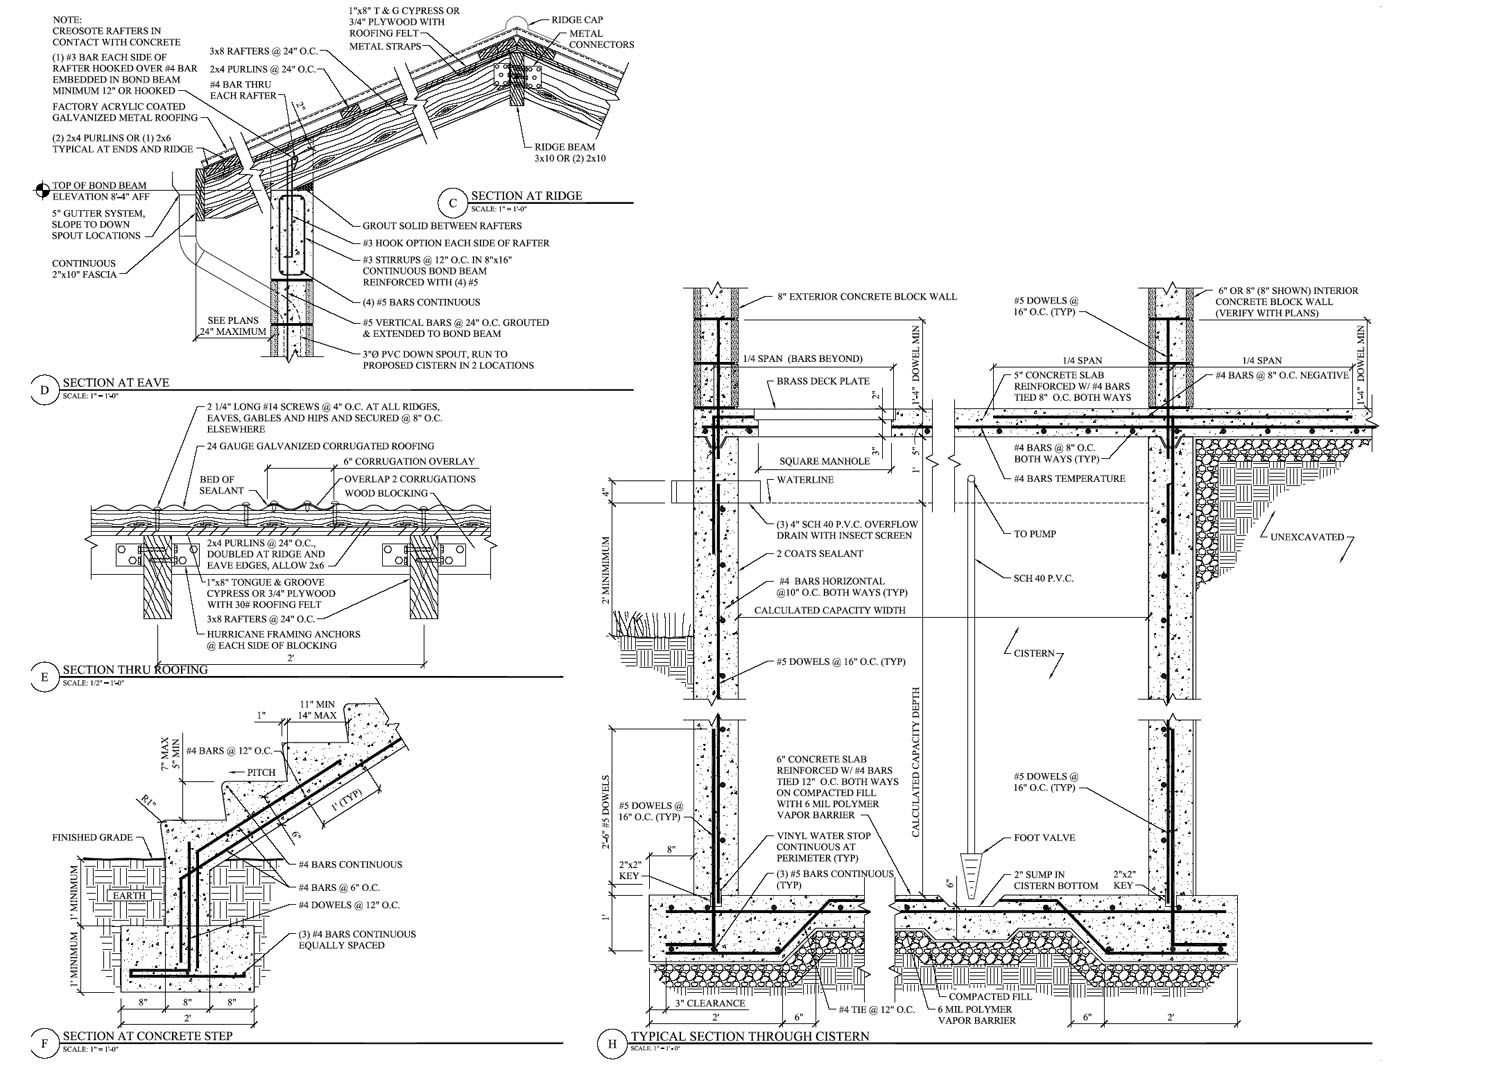 Section Drawings Including Details Examples Detailed Drawings Section Drawing Architecture Architecture Details